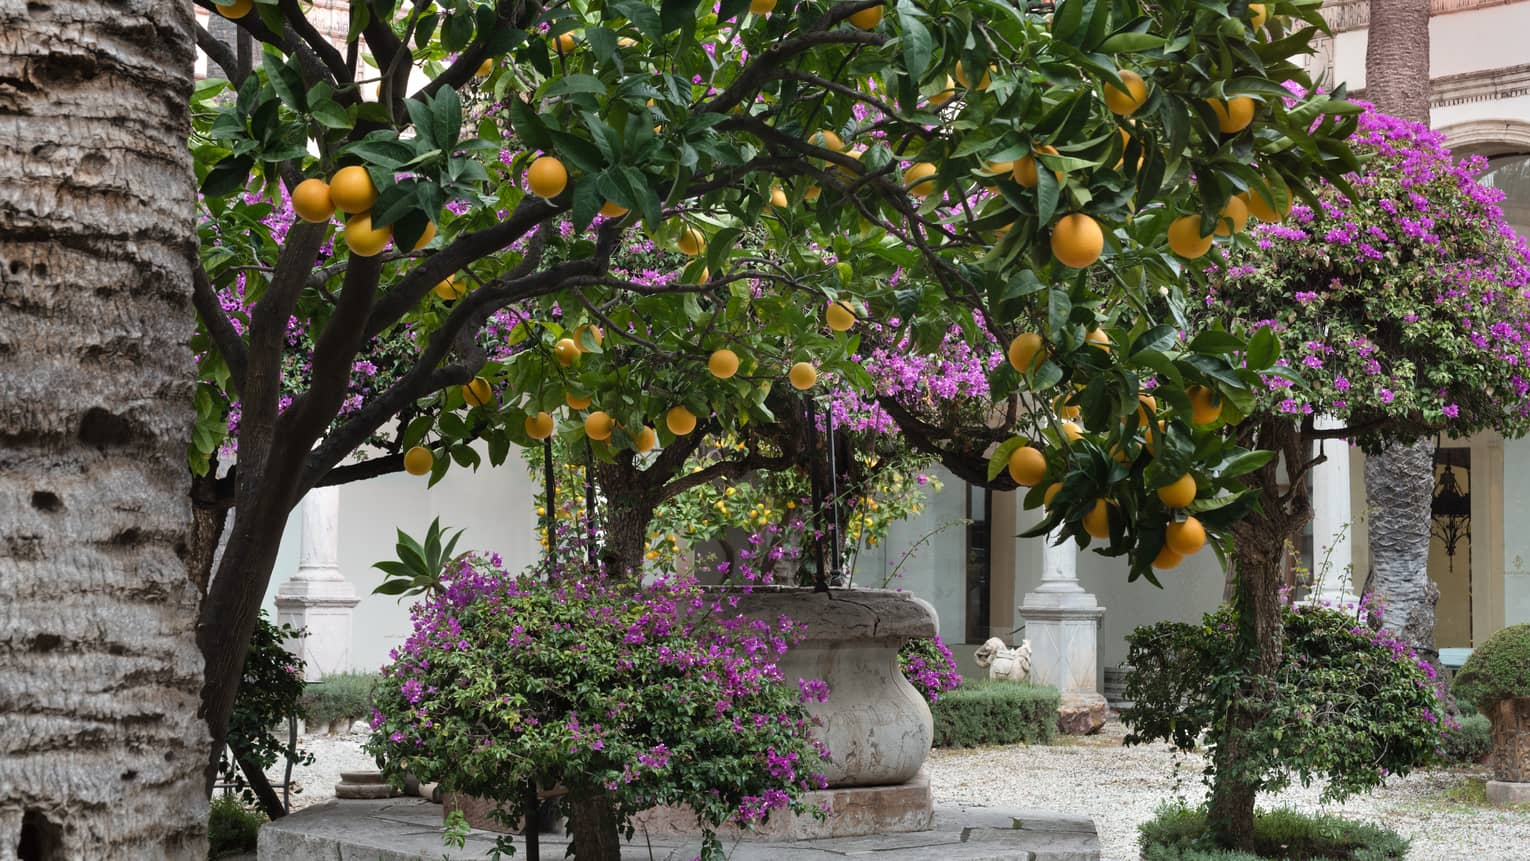 Courtyard with lemon trees and purple flowers